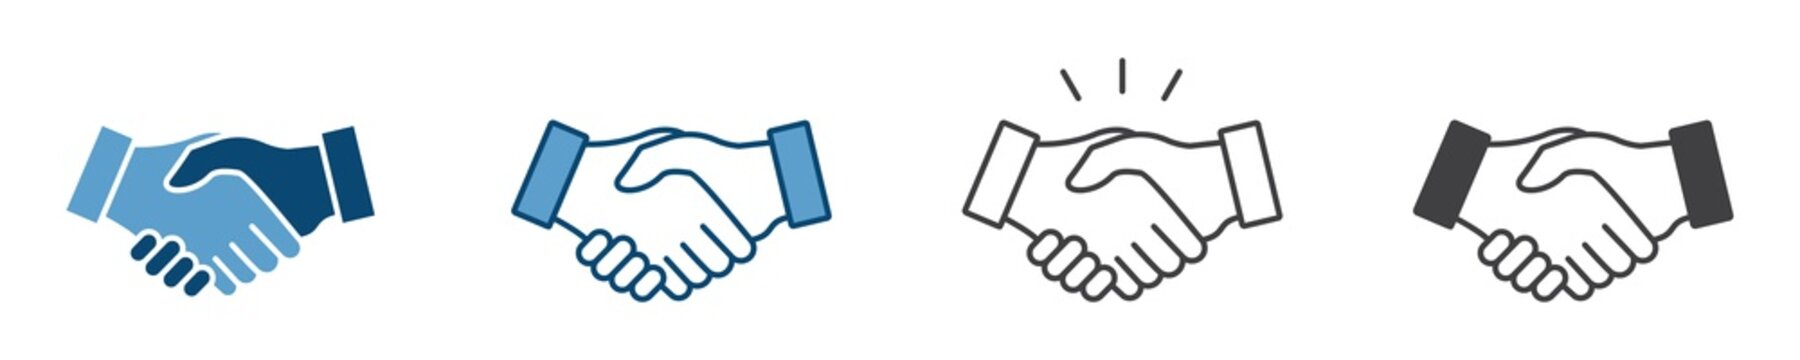 Business agreement handshake icon in different style vector illustration, friendly handshake icon for apps and websites